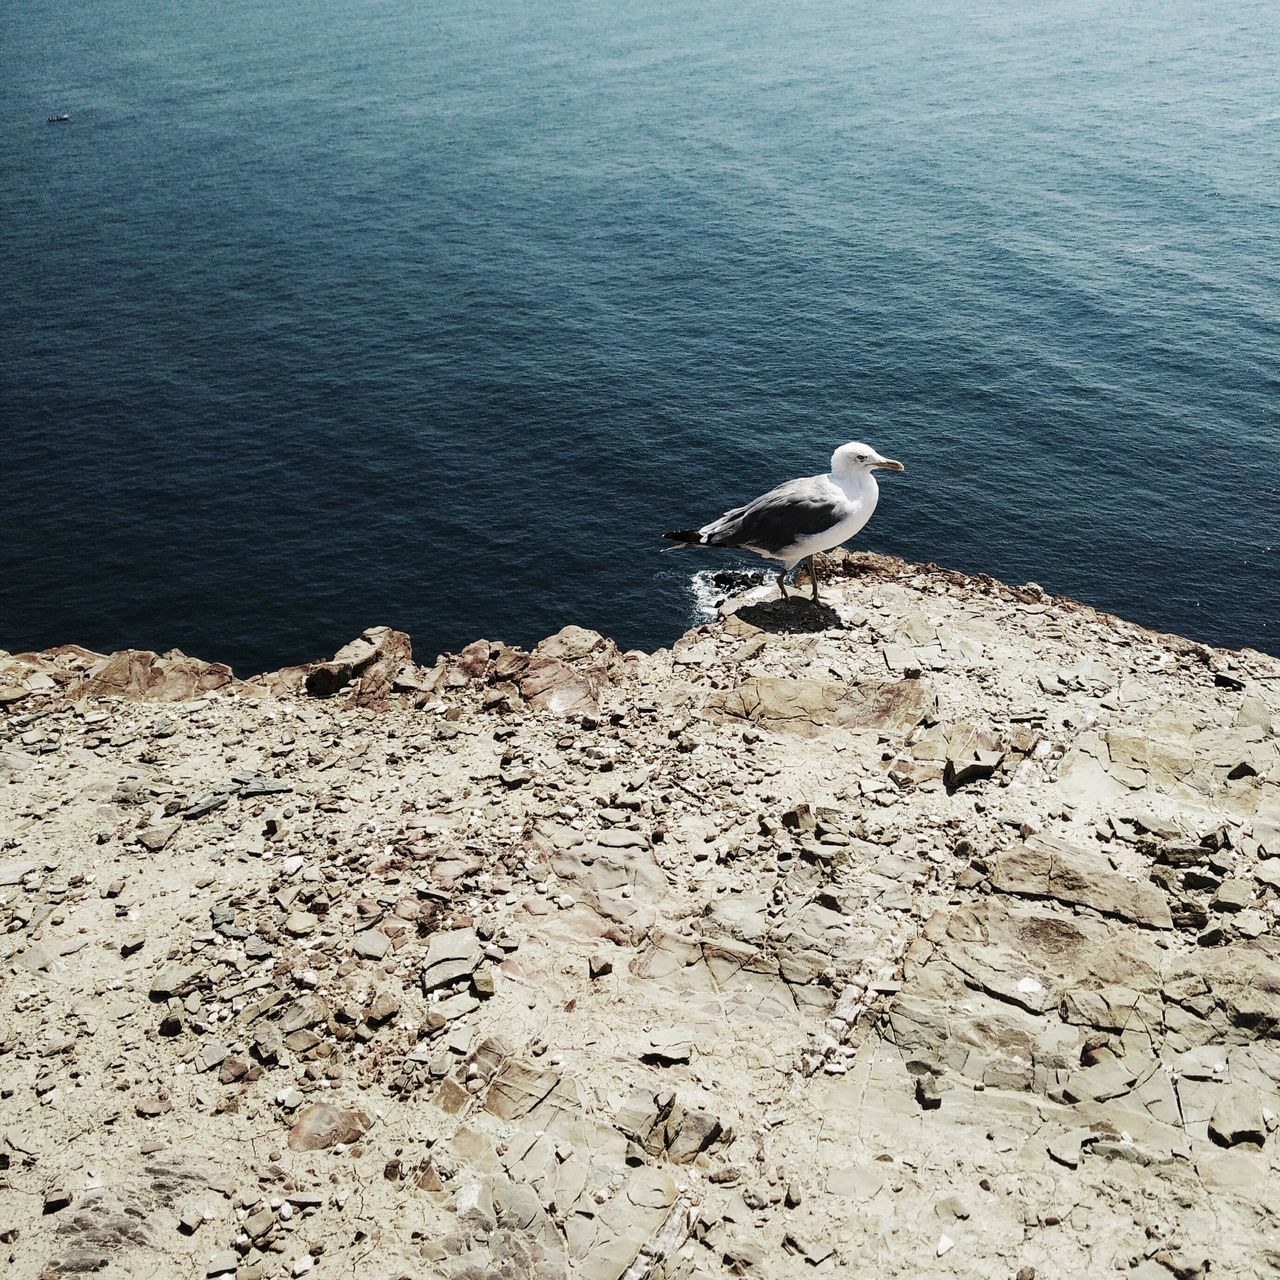 animal themes, one animal, water, bird, high angle view, day, sea, nature, animals in the wild, seagull, no people, outdoors, perching, mammal, spread wings